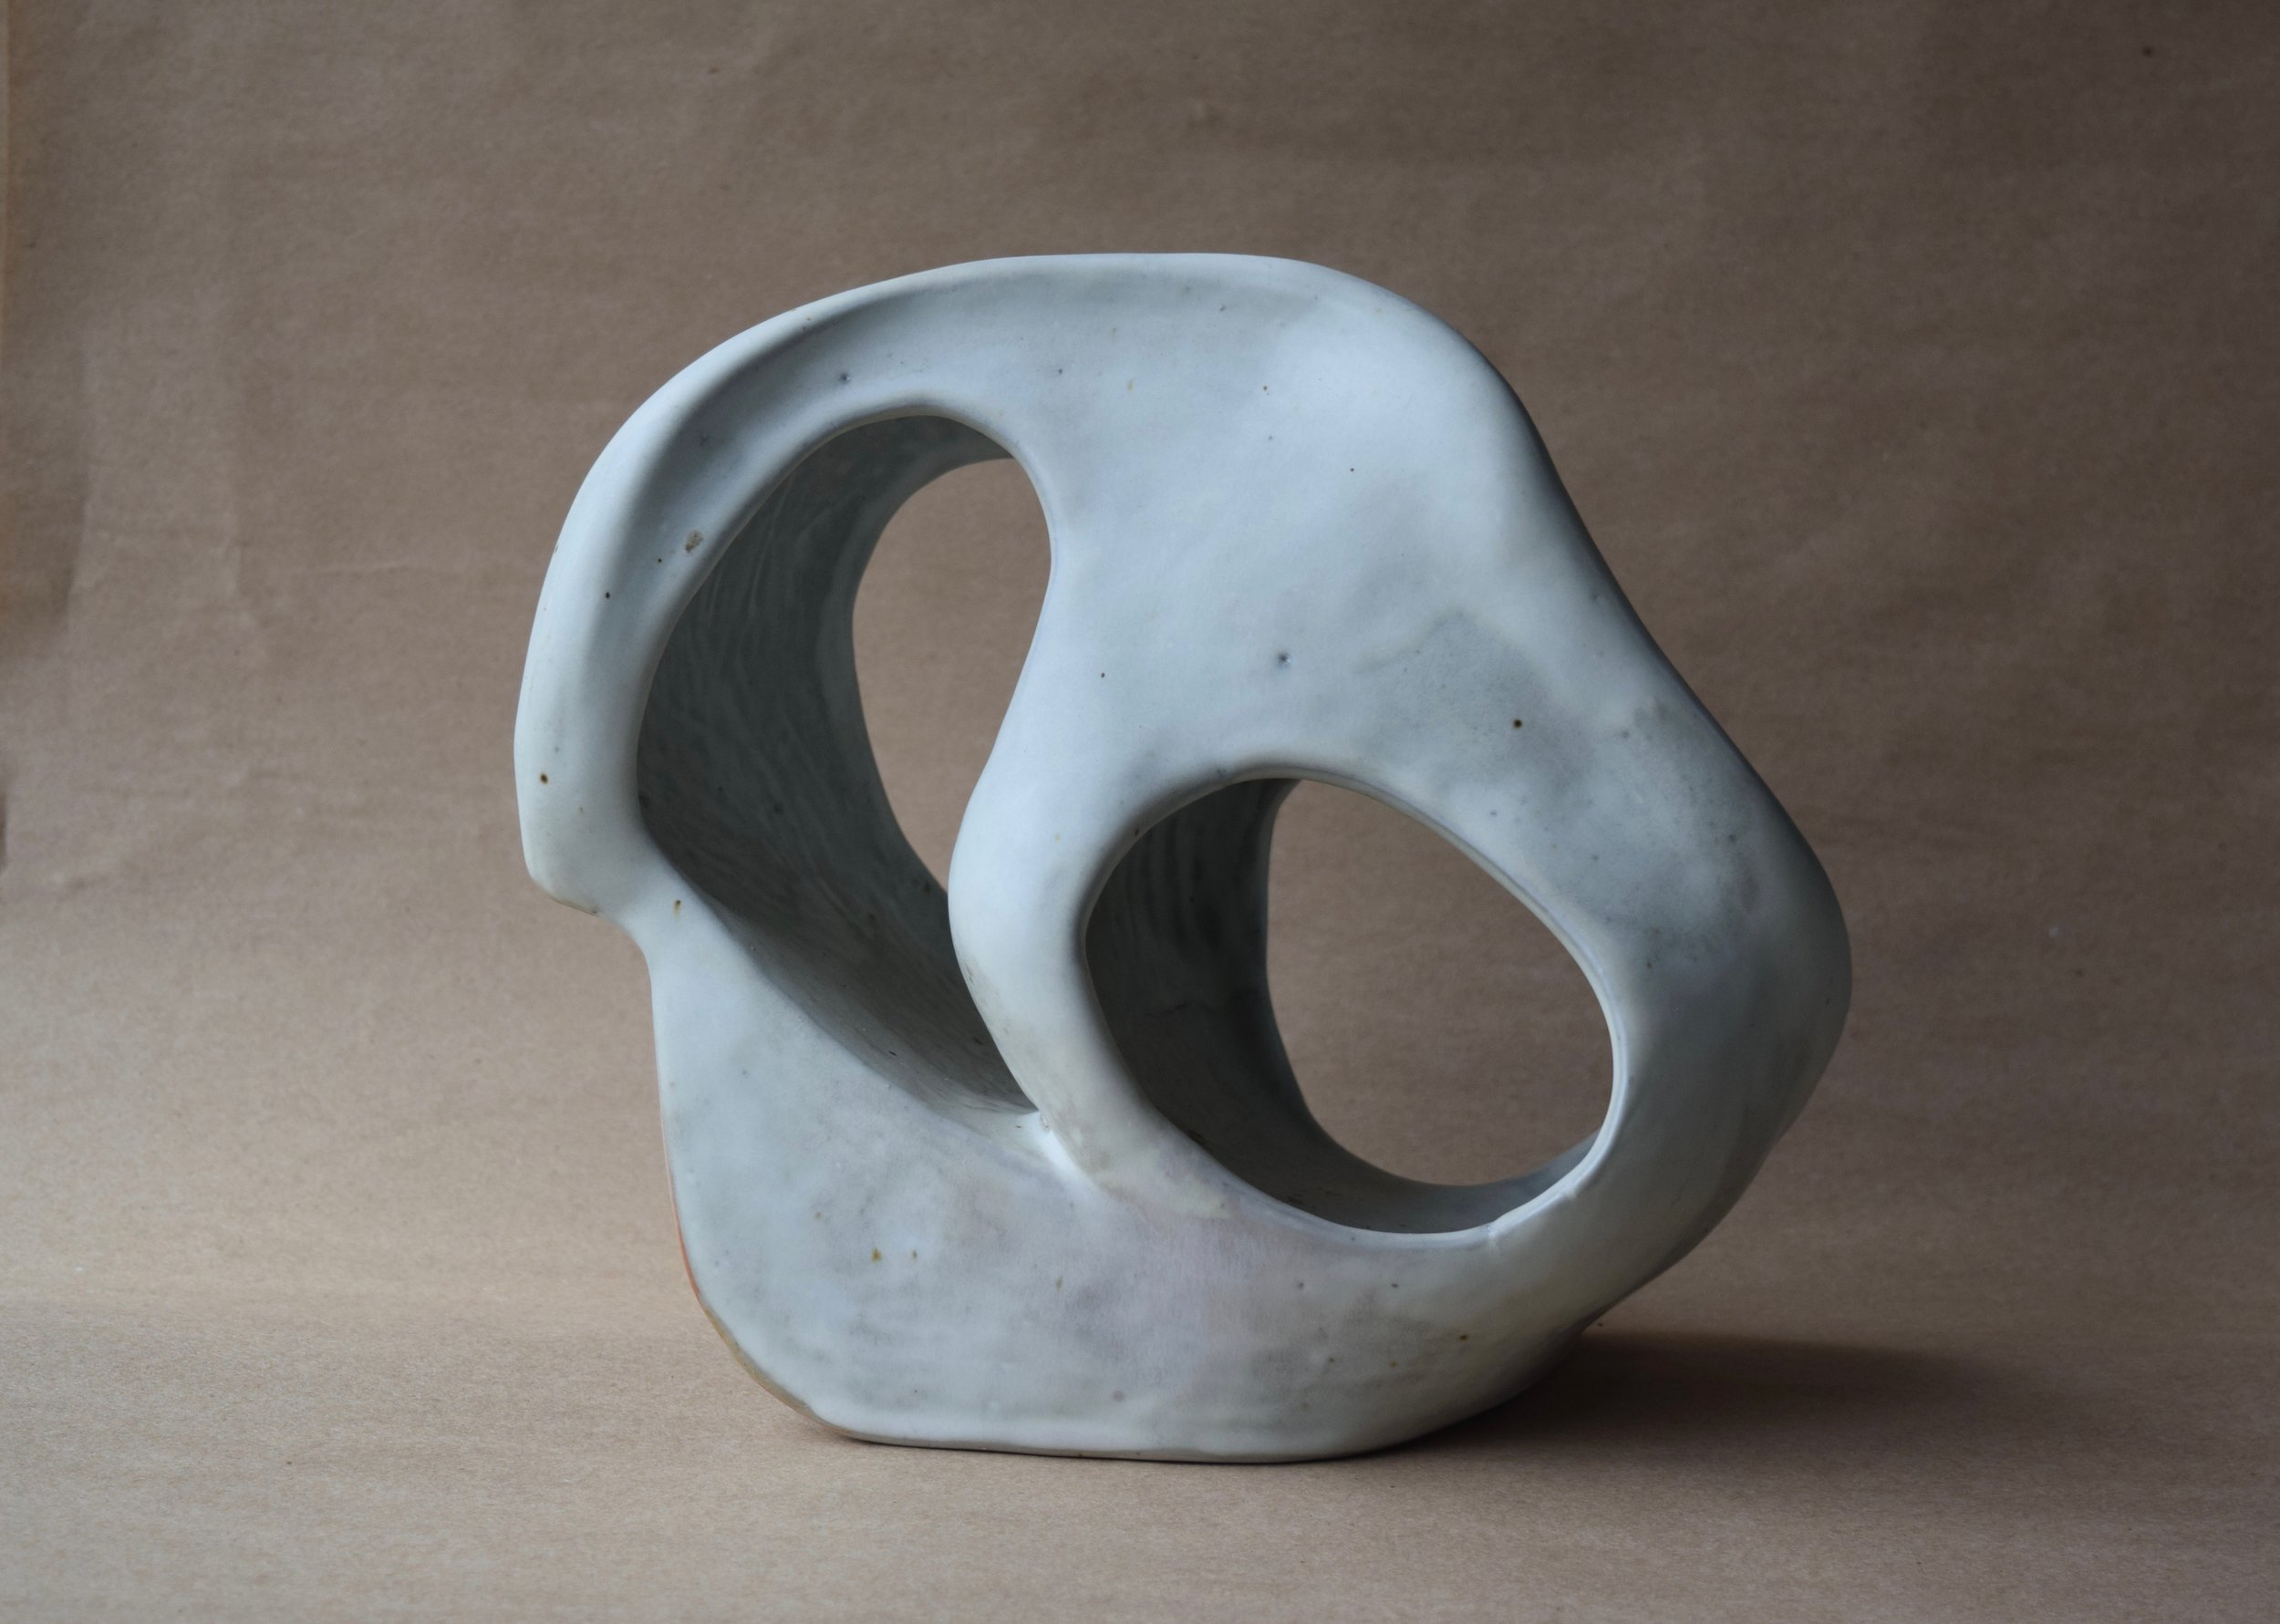 Untitled, 2013, stoneware, reduction, glazed, 10 x 13 x 10 in, SOLD